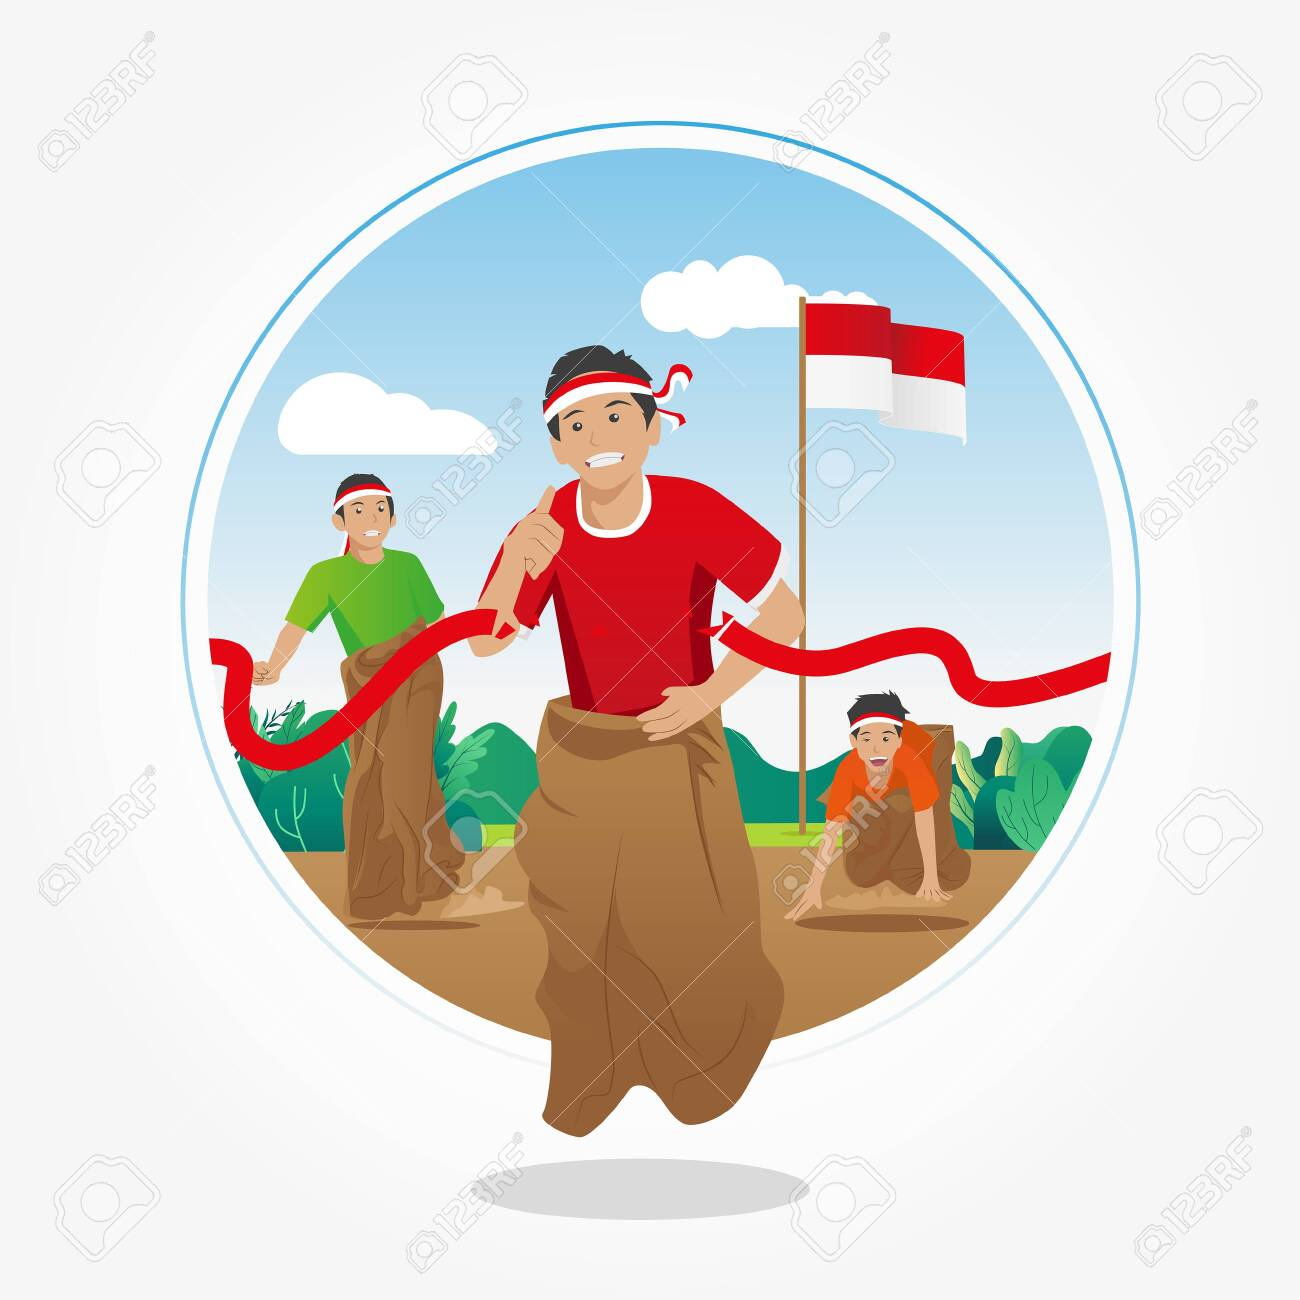 Lomba Balap Karung 17 Agustus Translate Sack Race Competition Royalty Free Cliparts Vectors And Stock Illustration Image 130404036